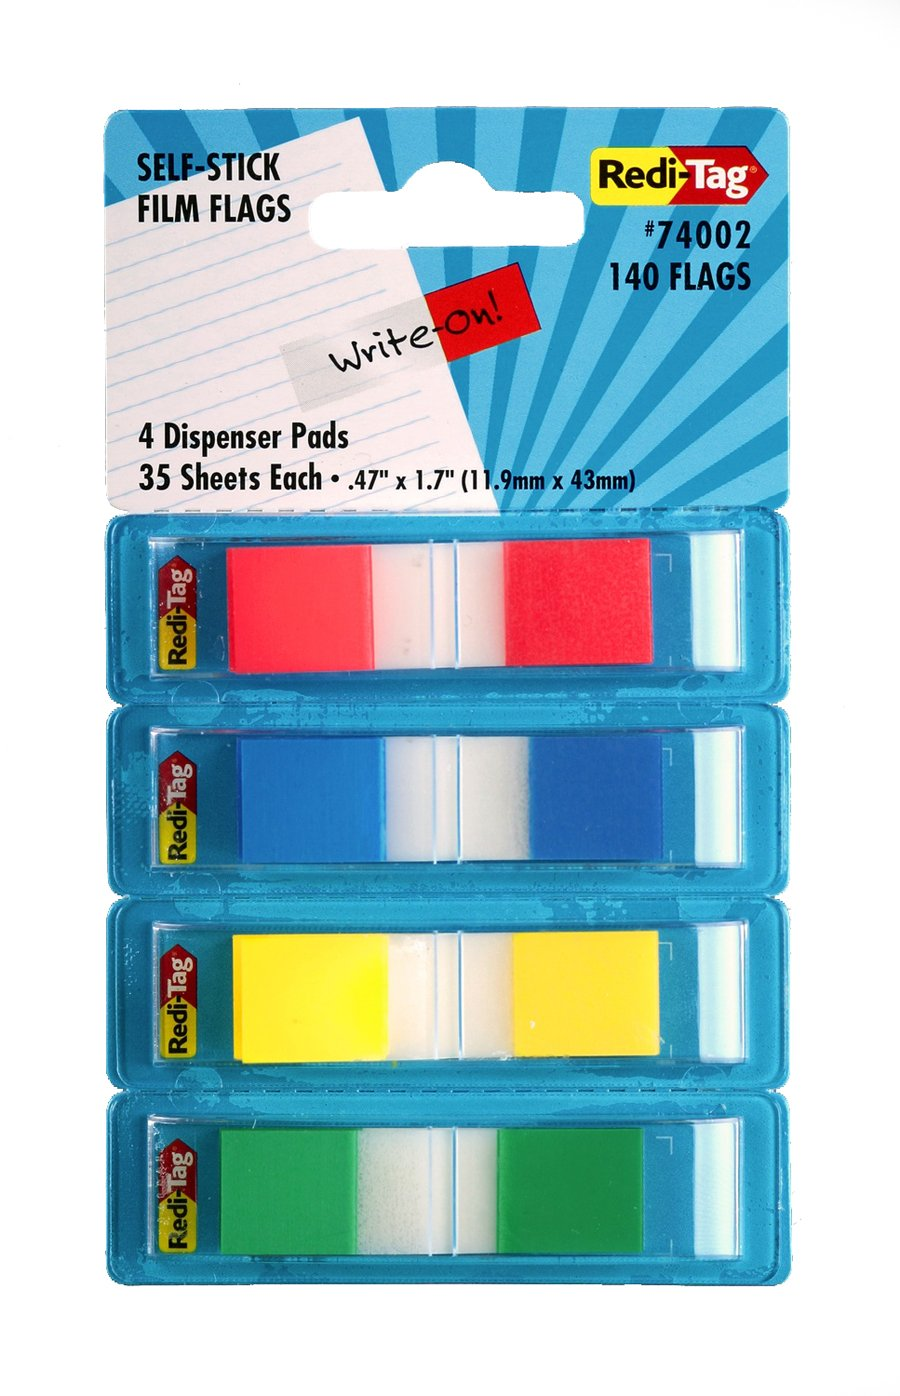 Yellow with Red Print 74004 Redi-Tag Sign Here Printed Pop-Up Page Flags 1 x 1.7 Inches 2 Dispensers per Pack 100 Flags Total